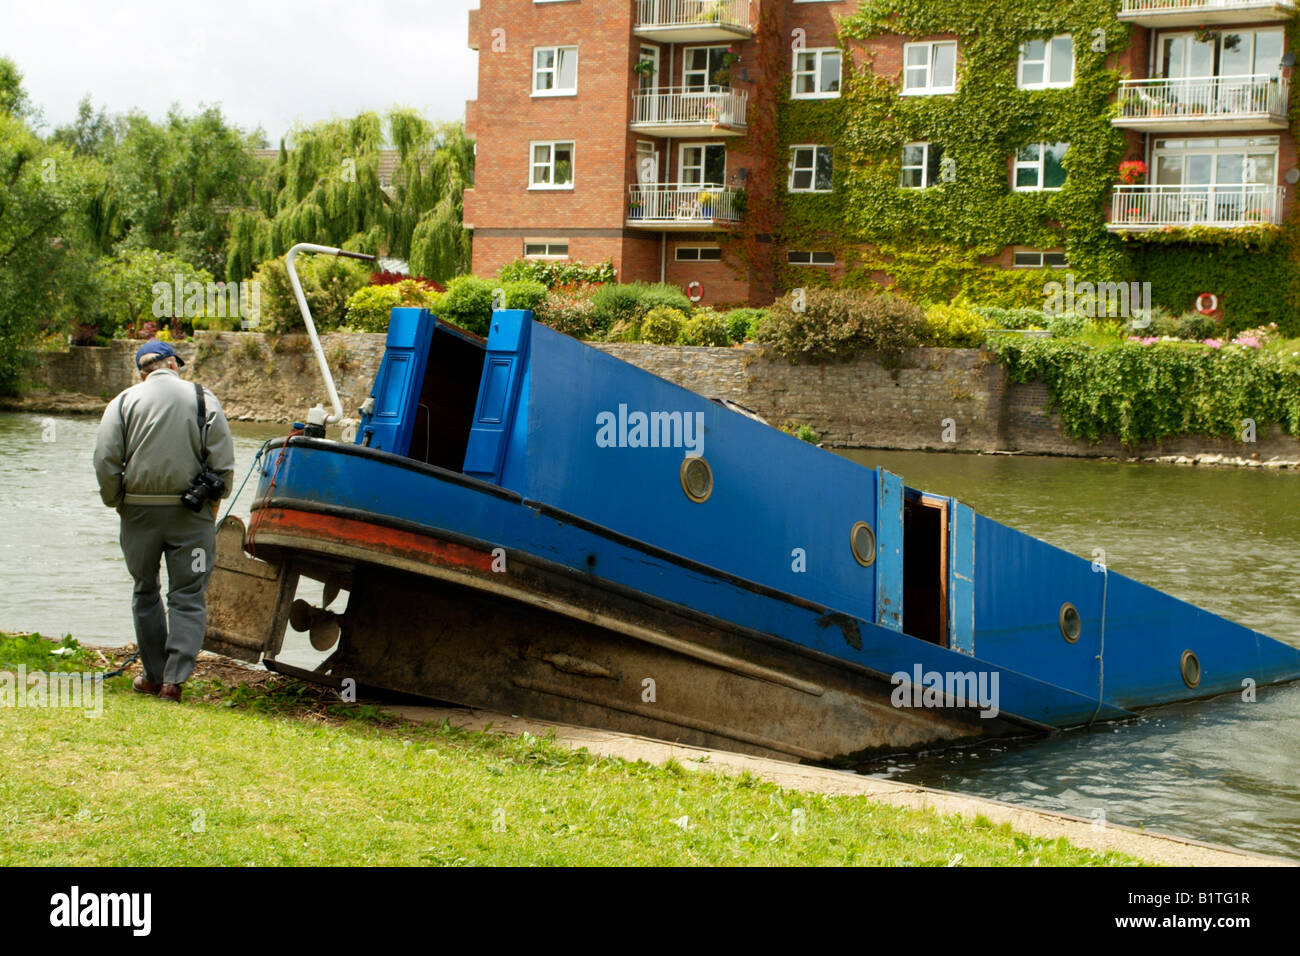 Man inspects a canalboat sinking into the River Avon at Stratford upon Avon England UK - Stock Image